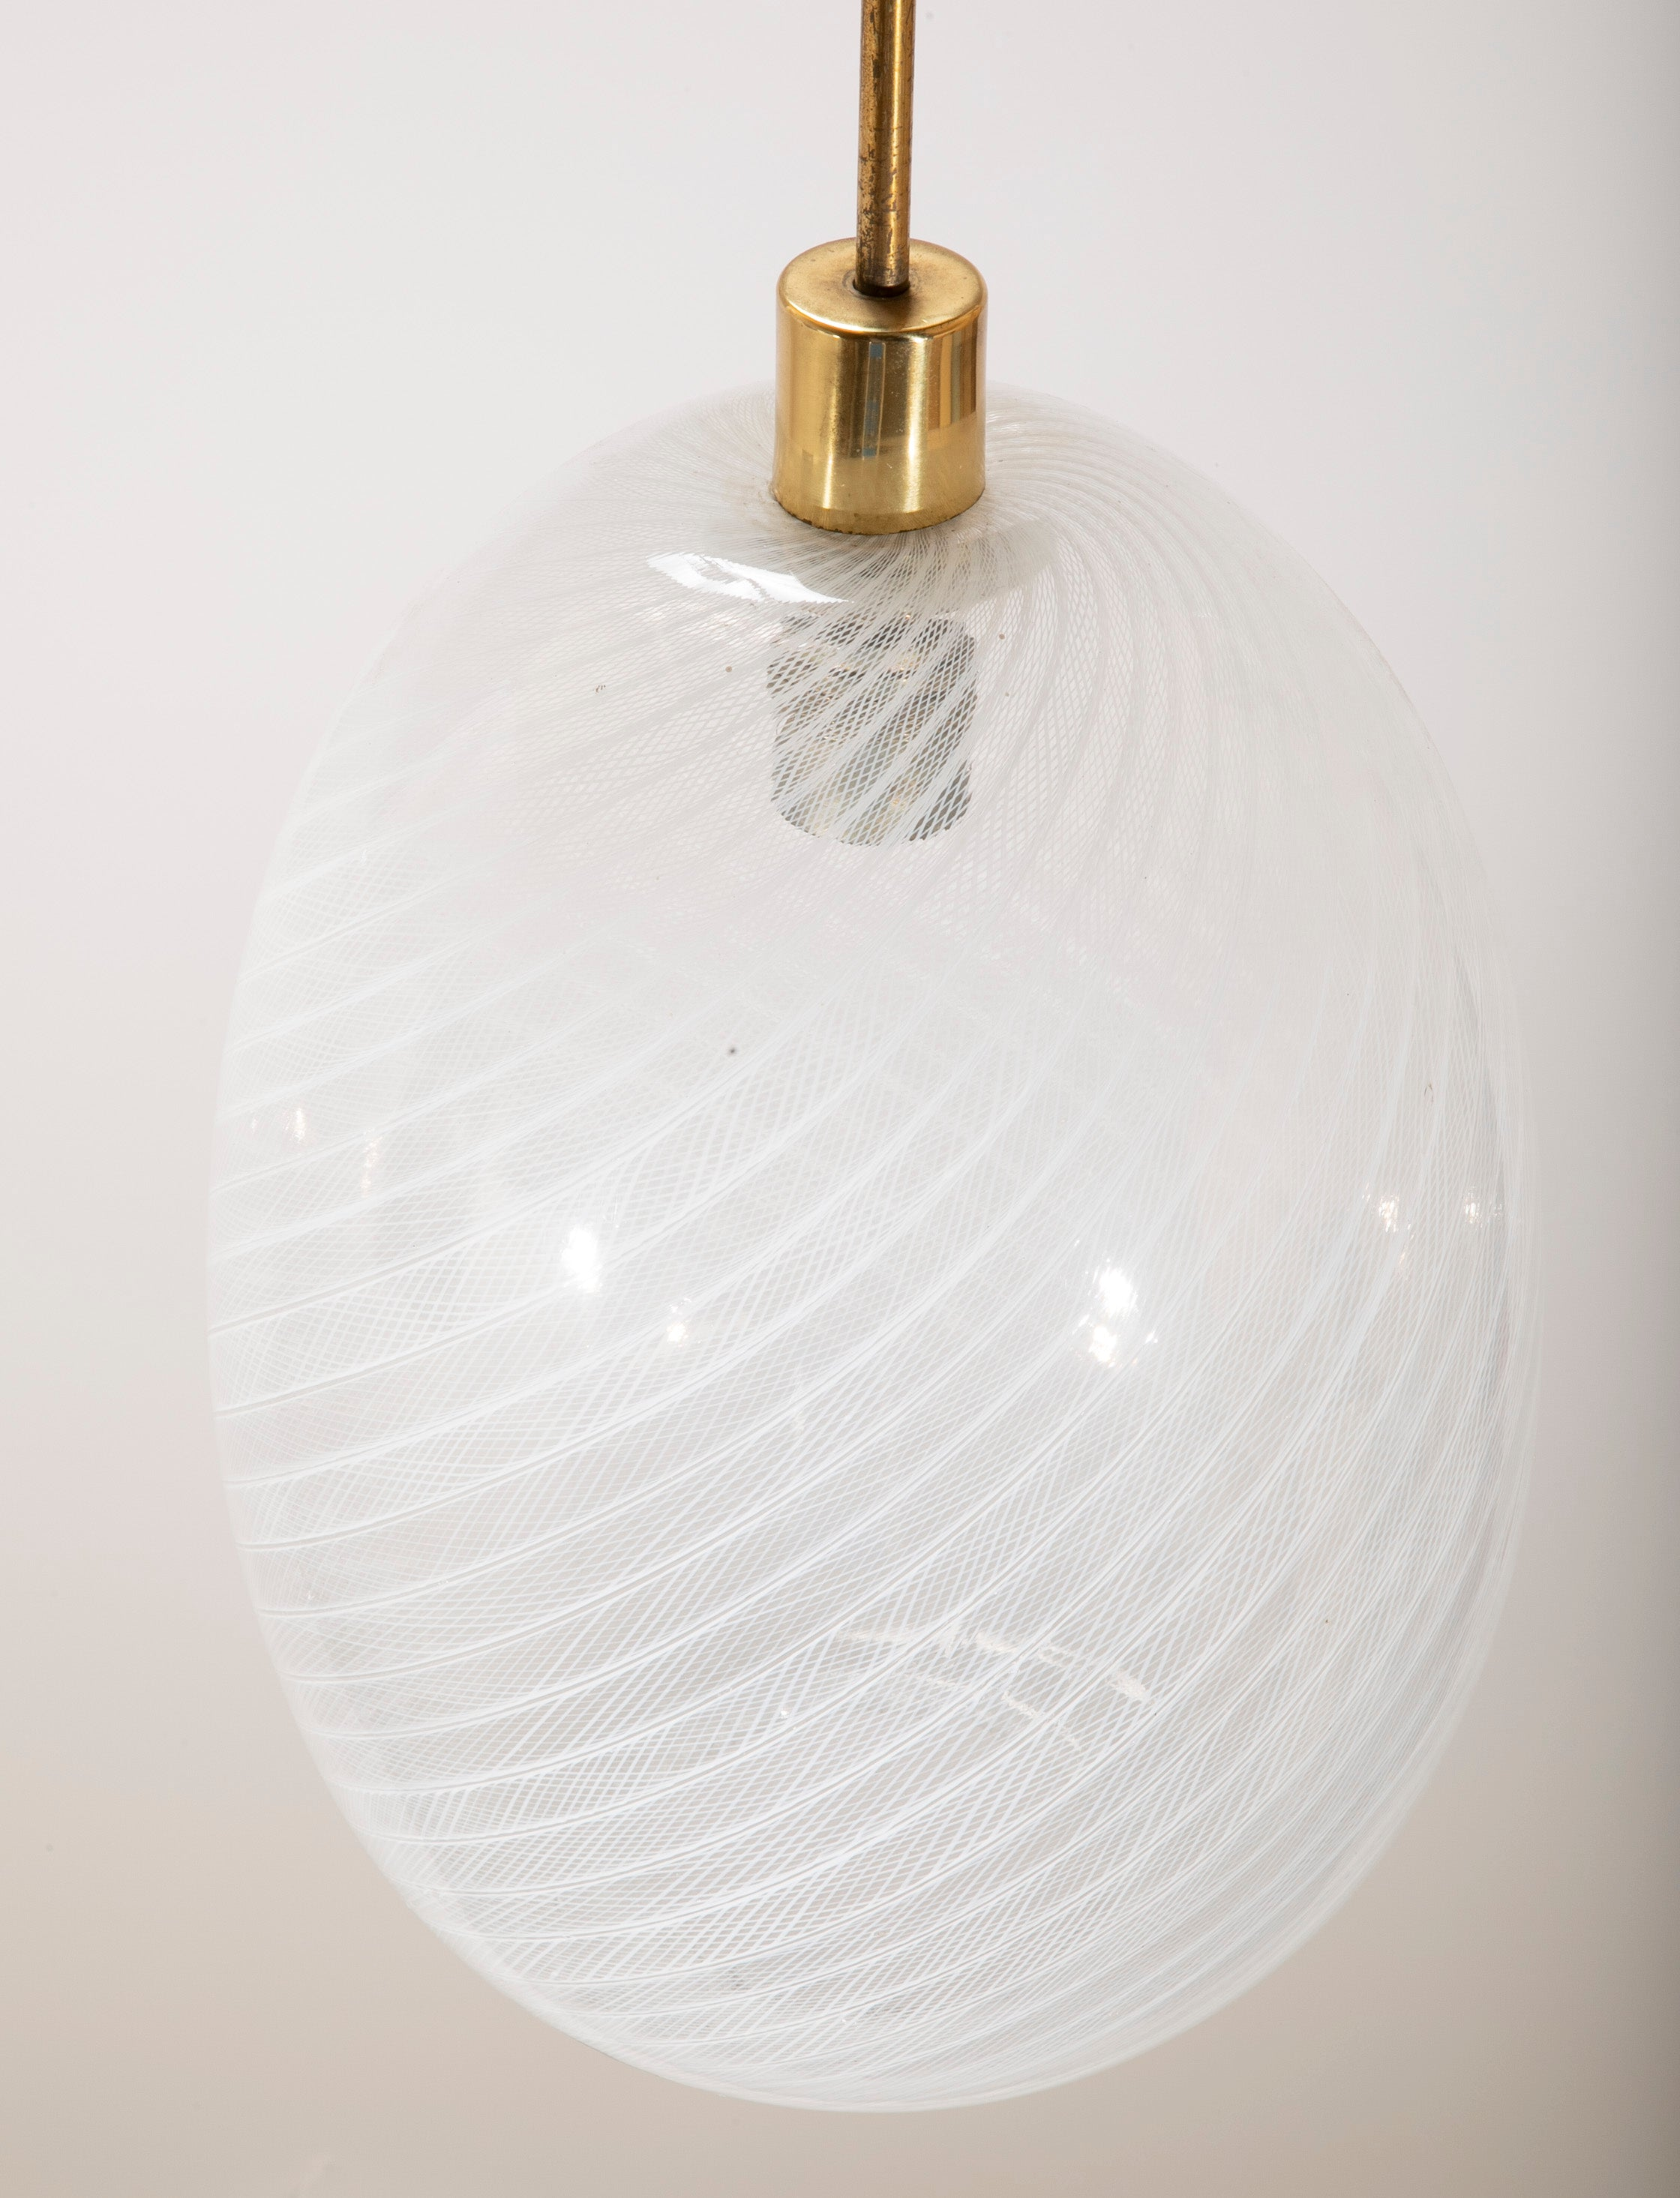 Reticello Glass and Brass Lantern by Venini, Murano, circa 1955